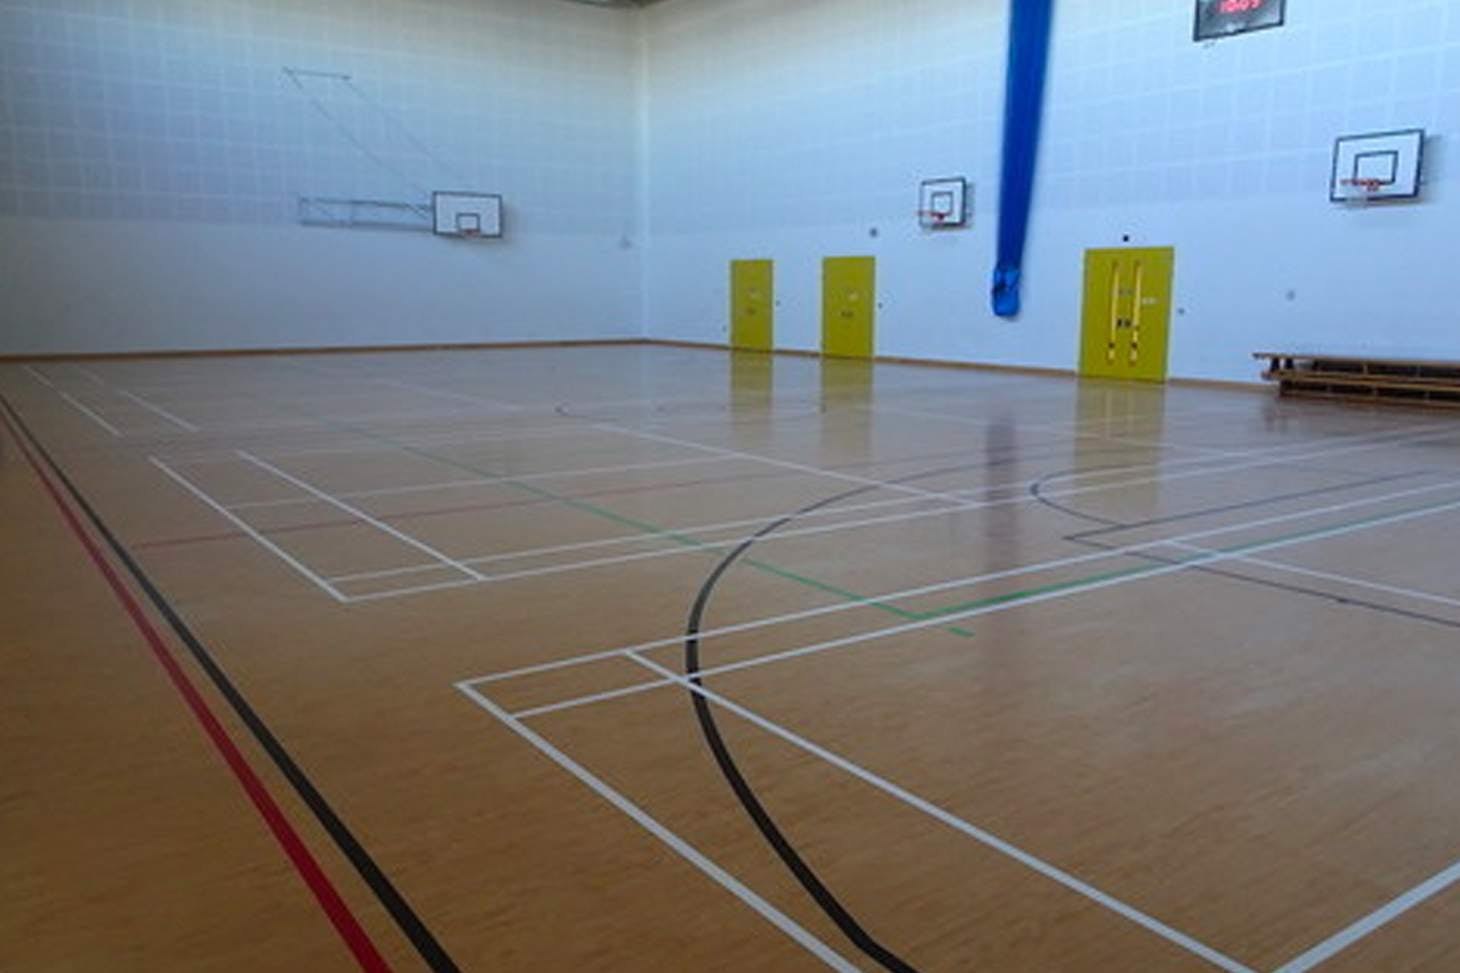 Our Lady's Convent High School Court | Sports hall basketball court